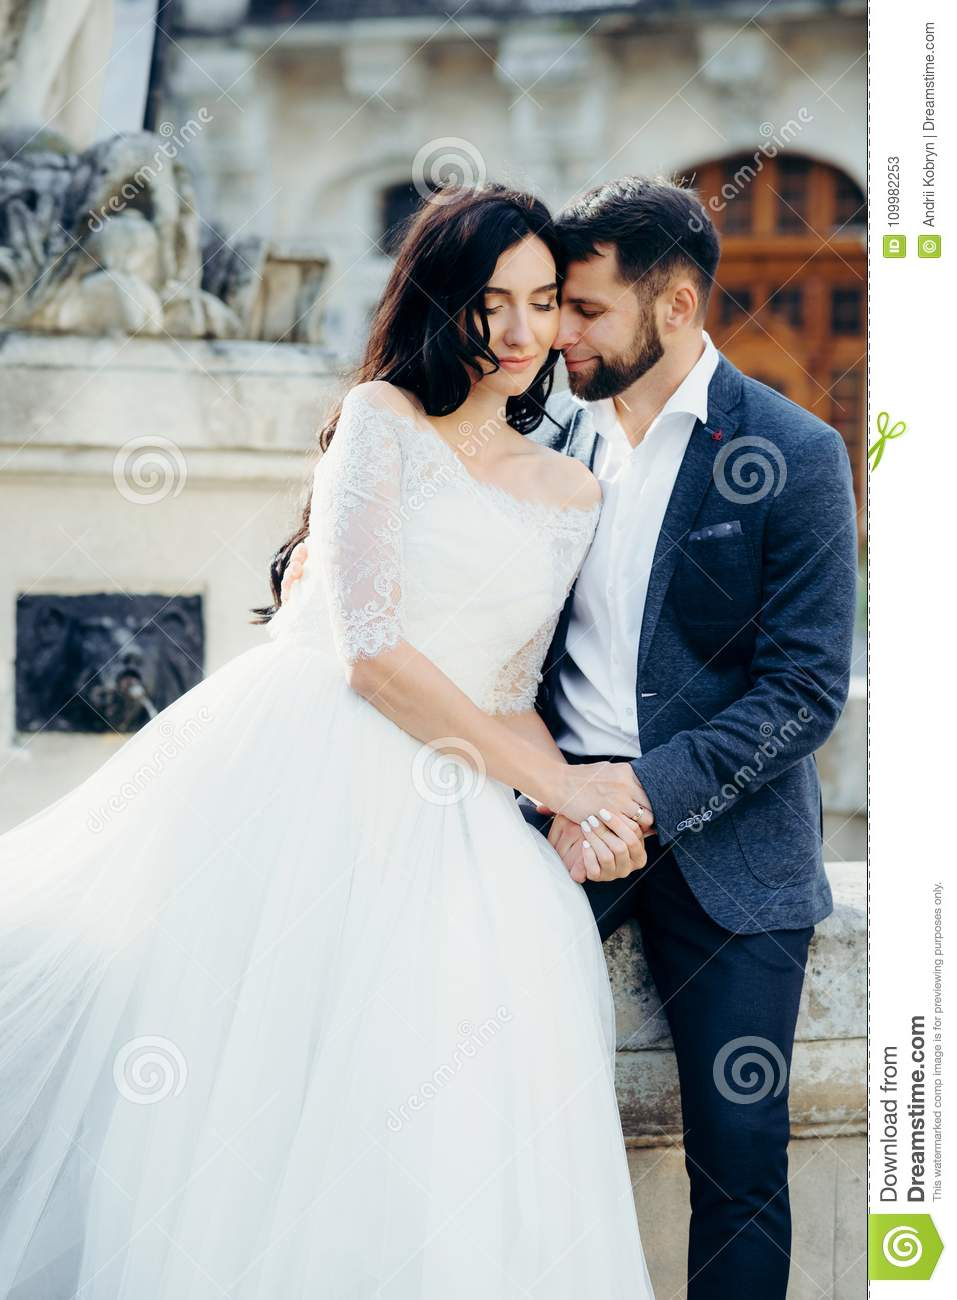 Romantic Outdoor Portrait Of The Beautiful Couple Of Newlyweds Tenderly Holding Hands And Touching Faces While Sitting Stock Image Image Of Adult Outdoors 109982253